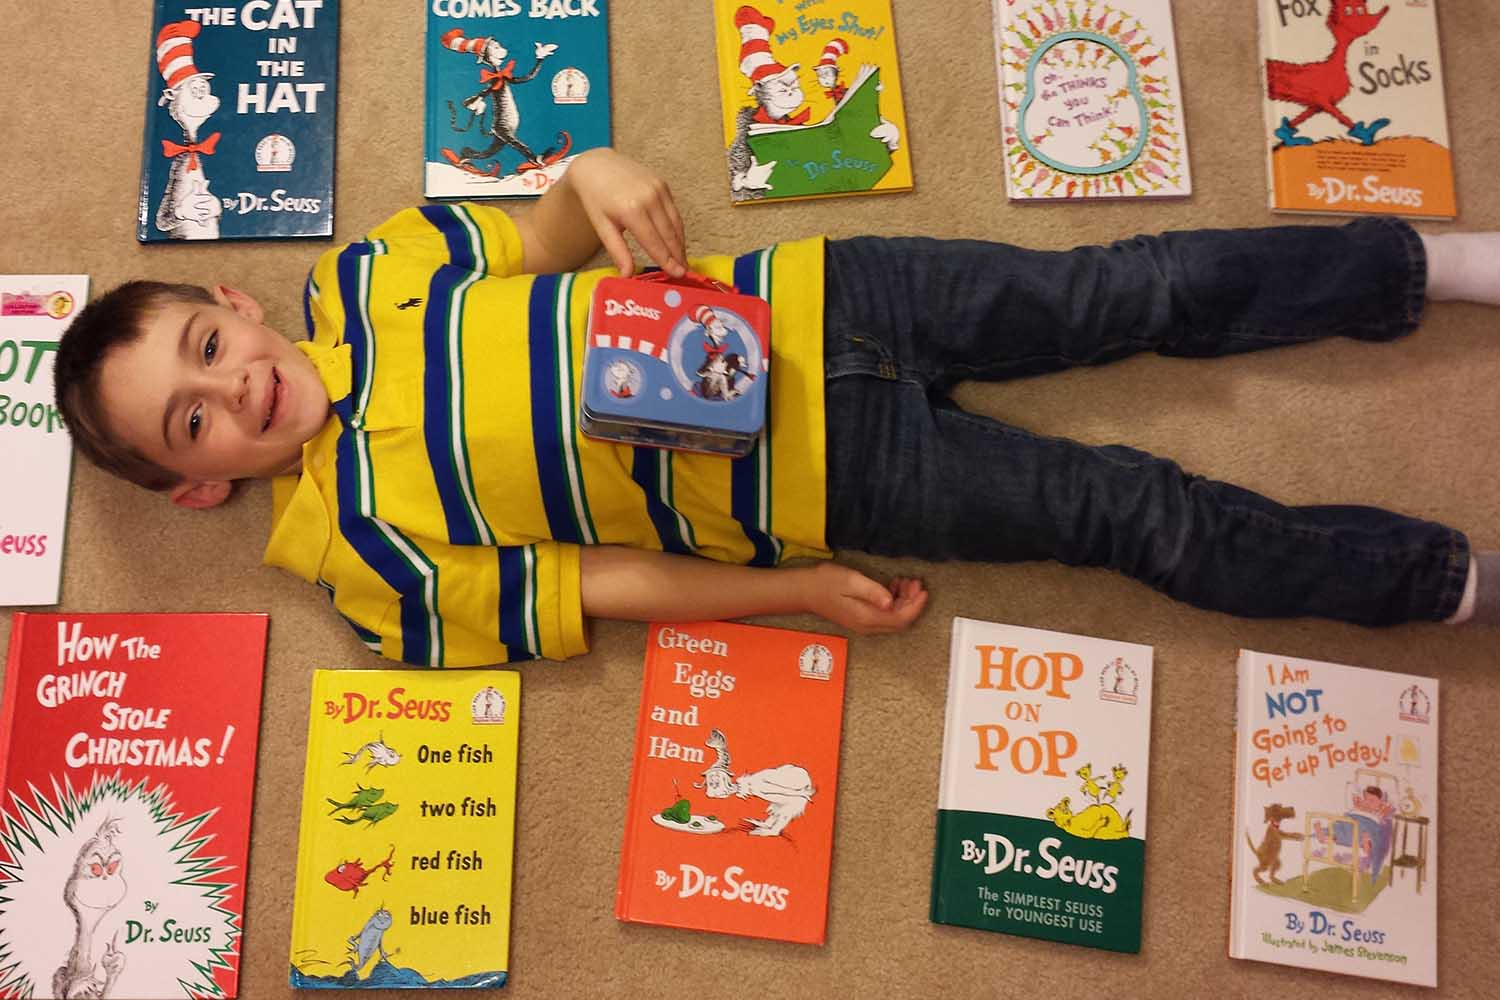 Laying on his bedroom floor surrounded by his collection of Dr. Seuss books, 7-year-old Owen Higgins was excited to hear about the discovery of an unpublished Dr. Seuss book that is scheduled to go on sale July 28.